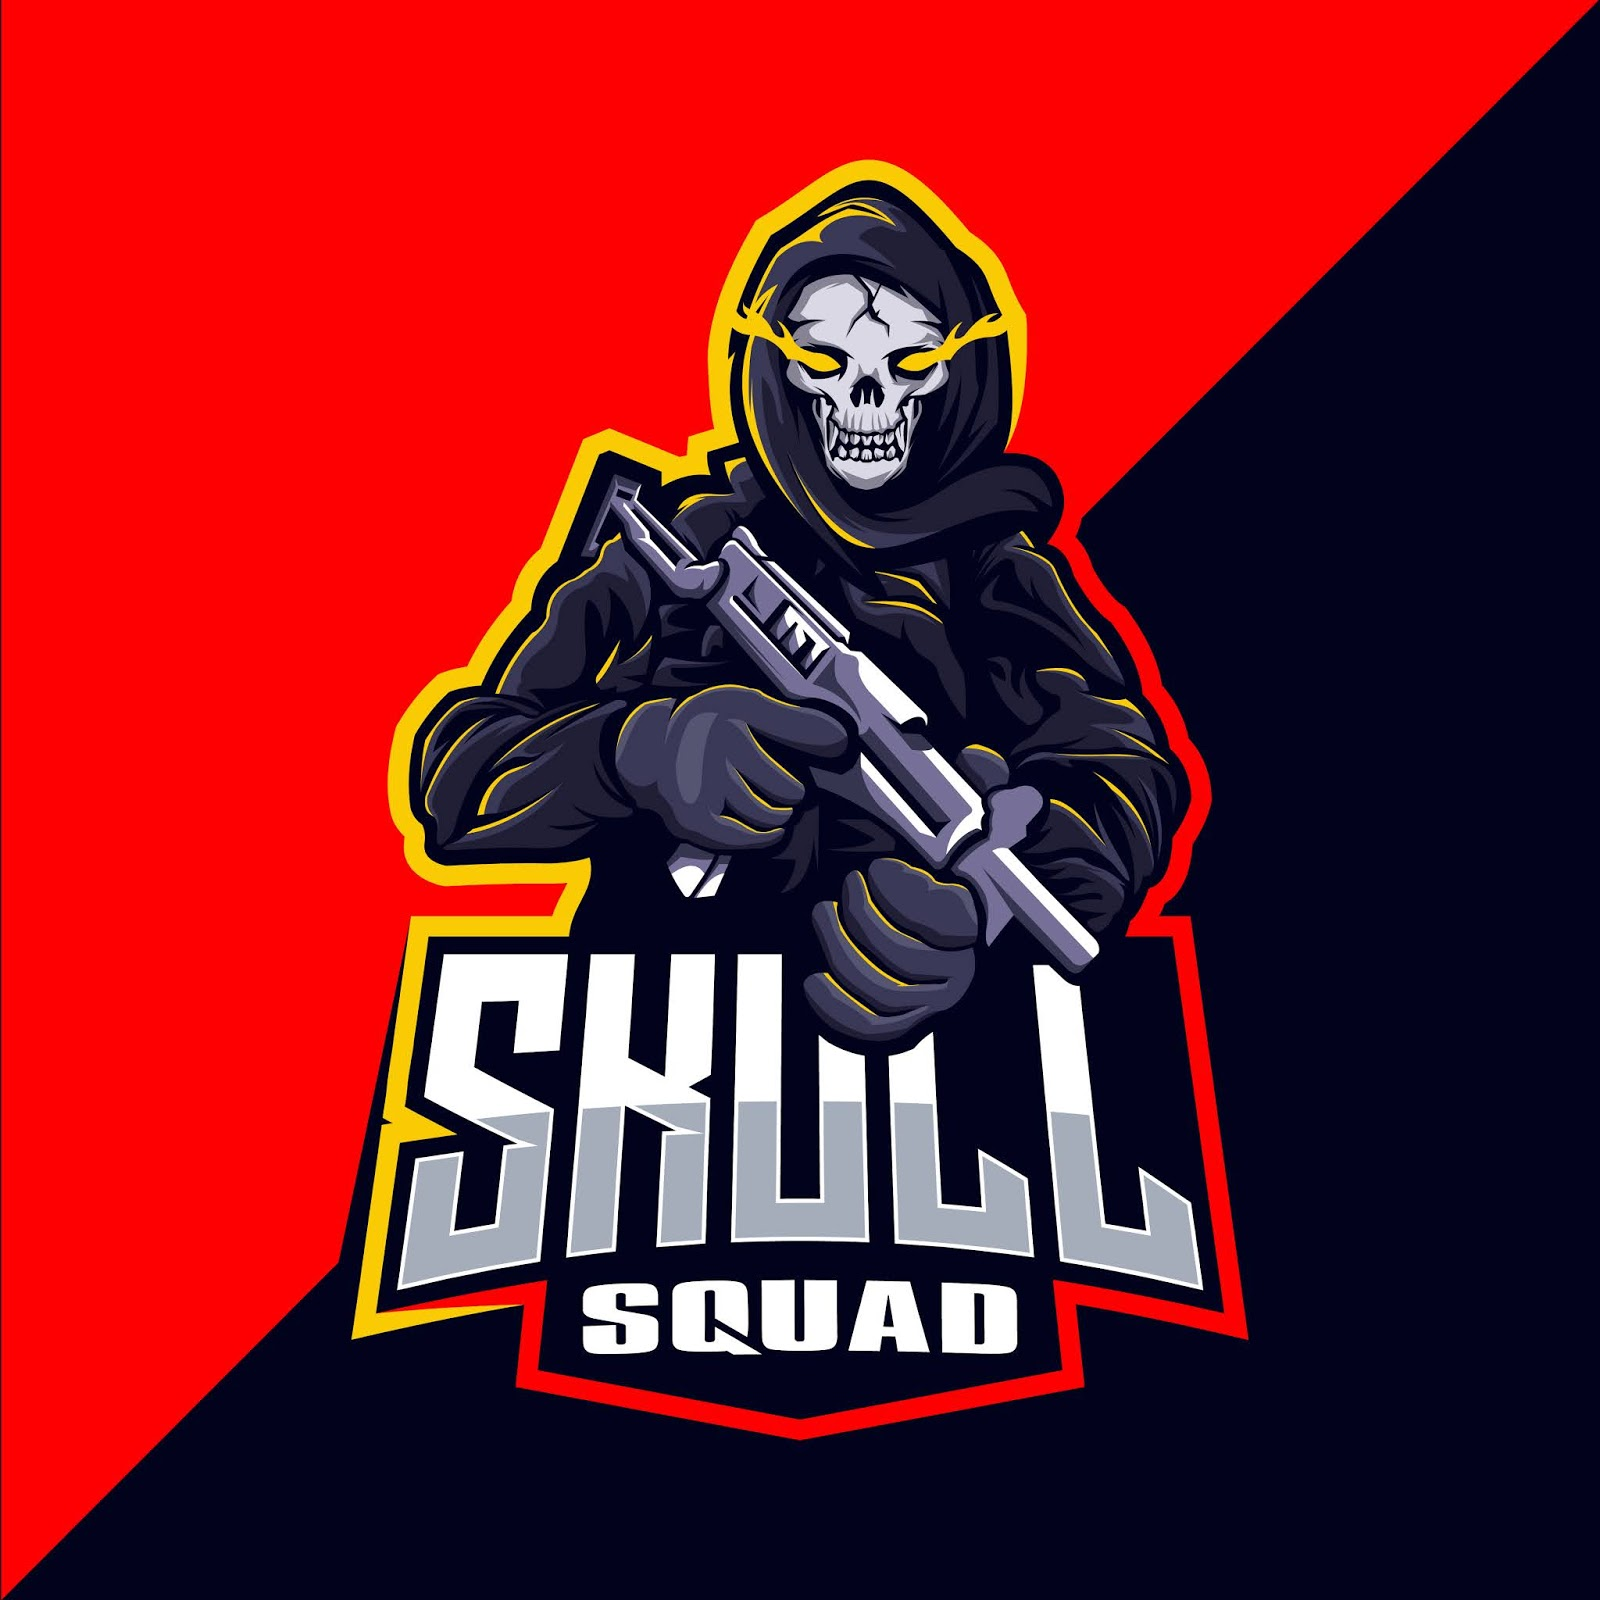 Skull Squad With Gun Mascot Esport Free Download Vector CDR, AI, EPS and PNG Formats